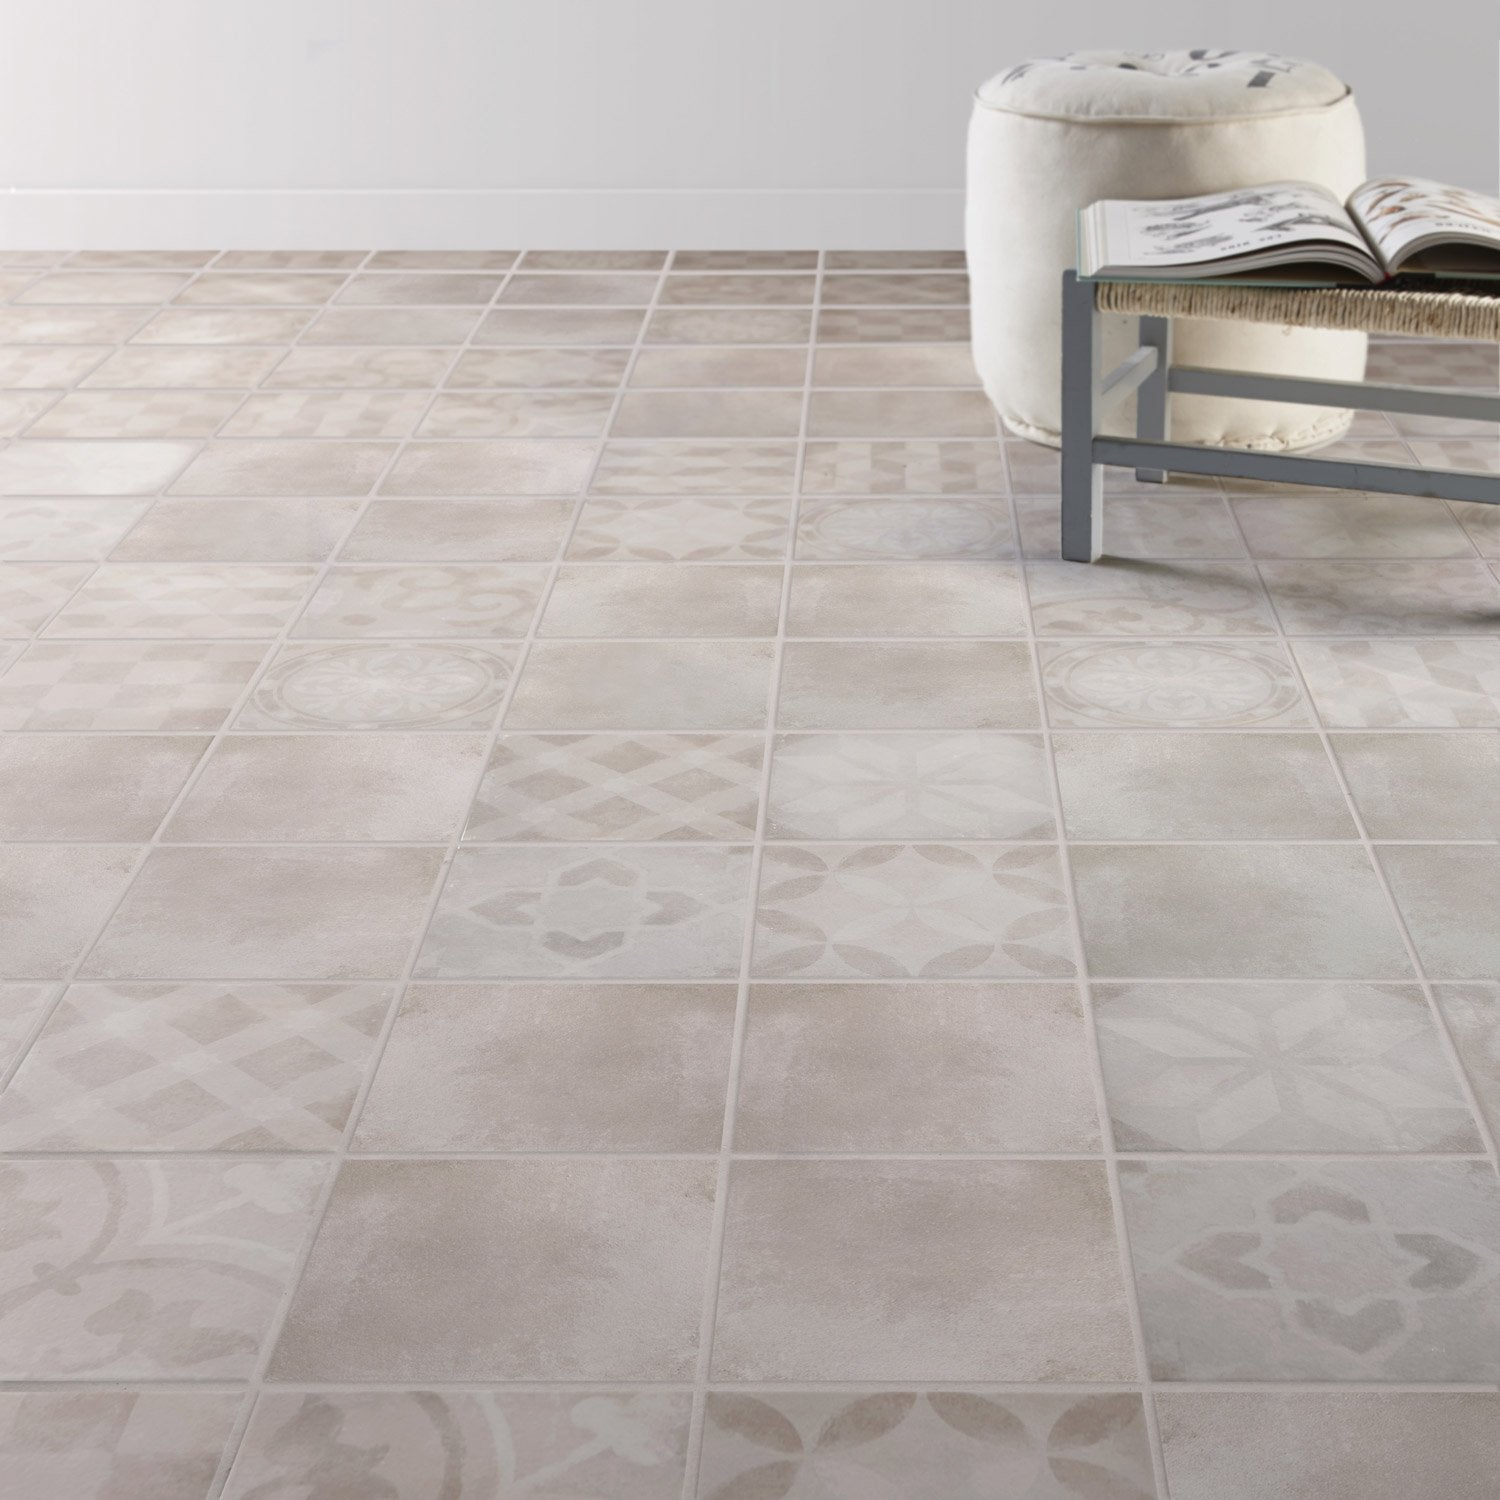 Carrelage leroy merlin gris for Carrelage hexagonal leroy merlin